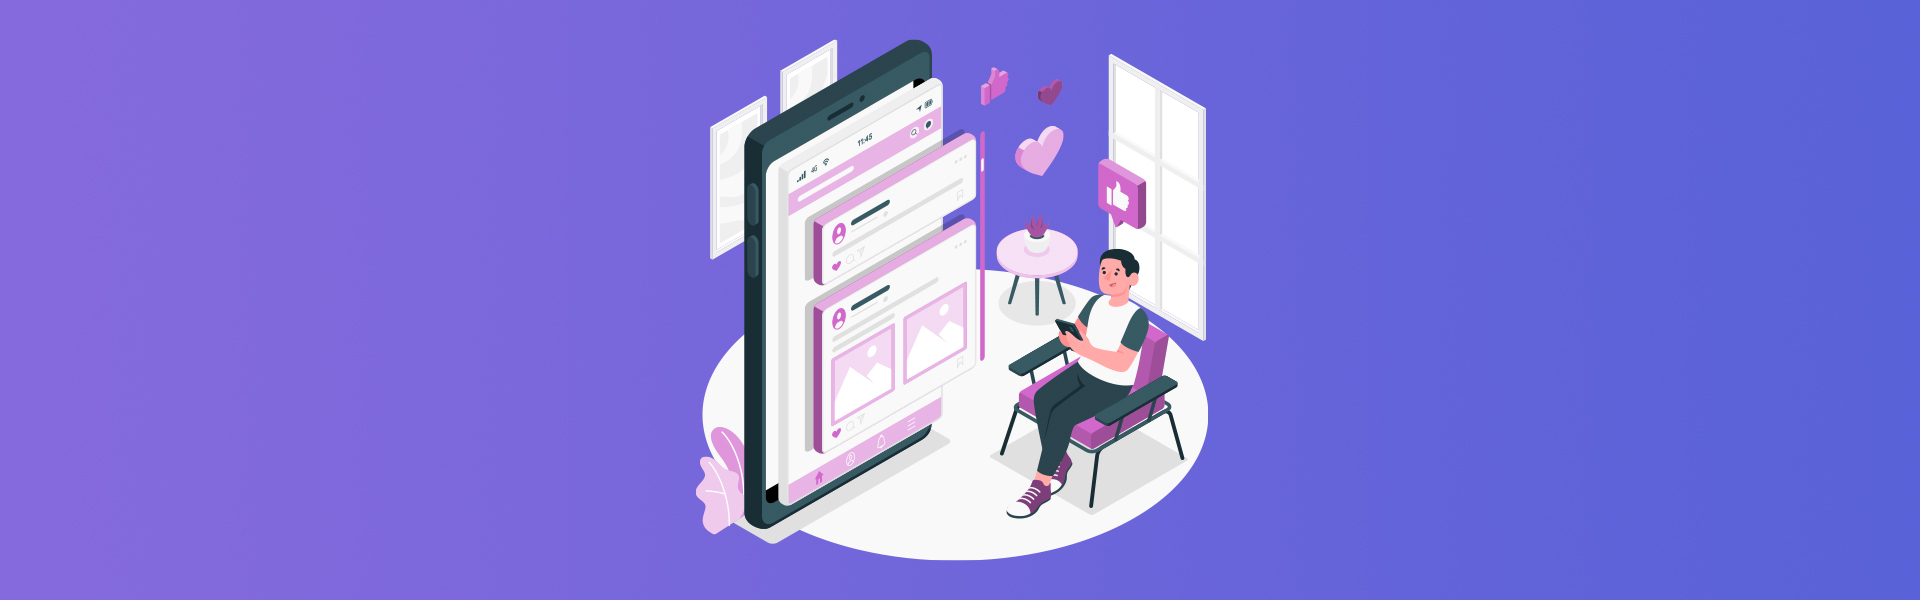 The 10 Best Social Media And Content Apps For 2021 by Lead Genera